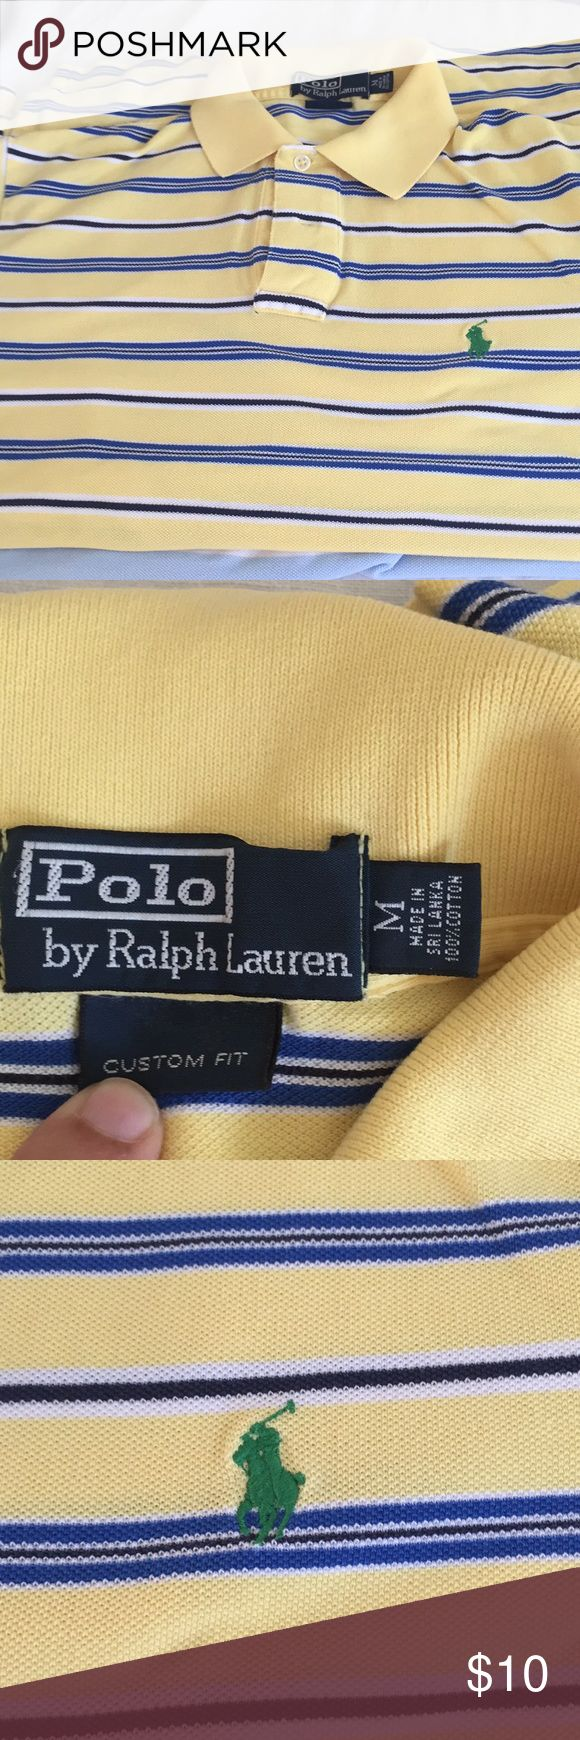 Perfectly broken in custom fit polo Ralph Lauren Custom fit RL polo is classic pique knit blue and yellow stripes has some worn in spots shown in photos. This would make a great layering piece or still looks great with bright crisp colors. Polo by Ralph Lauren Shirts Polos